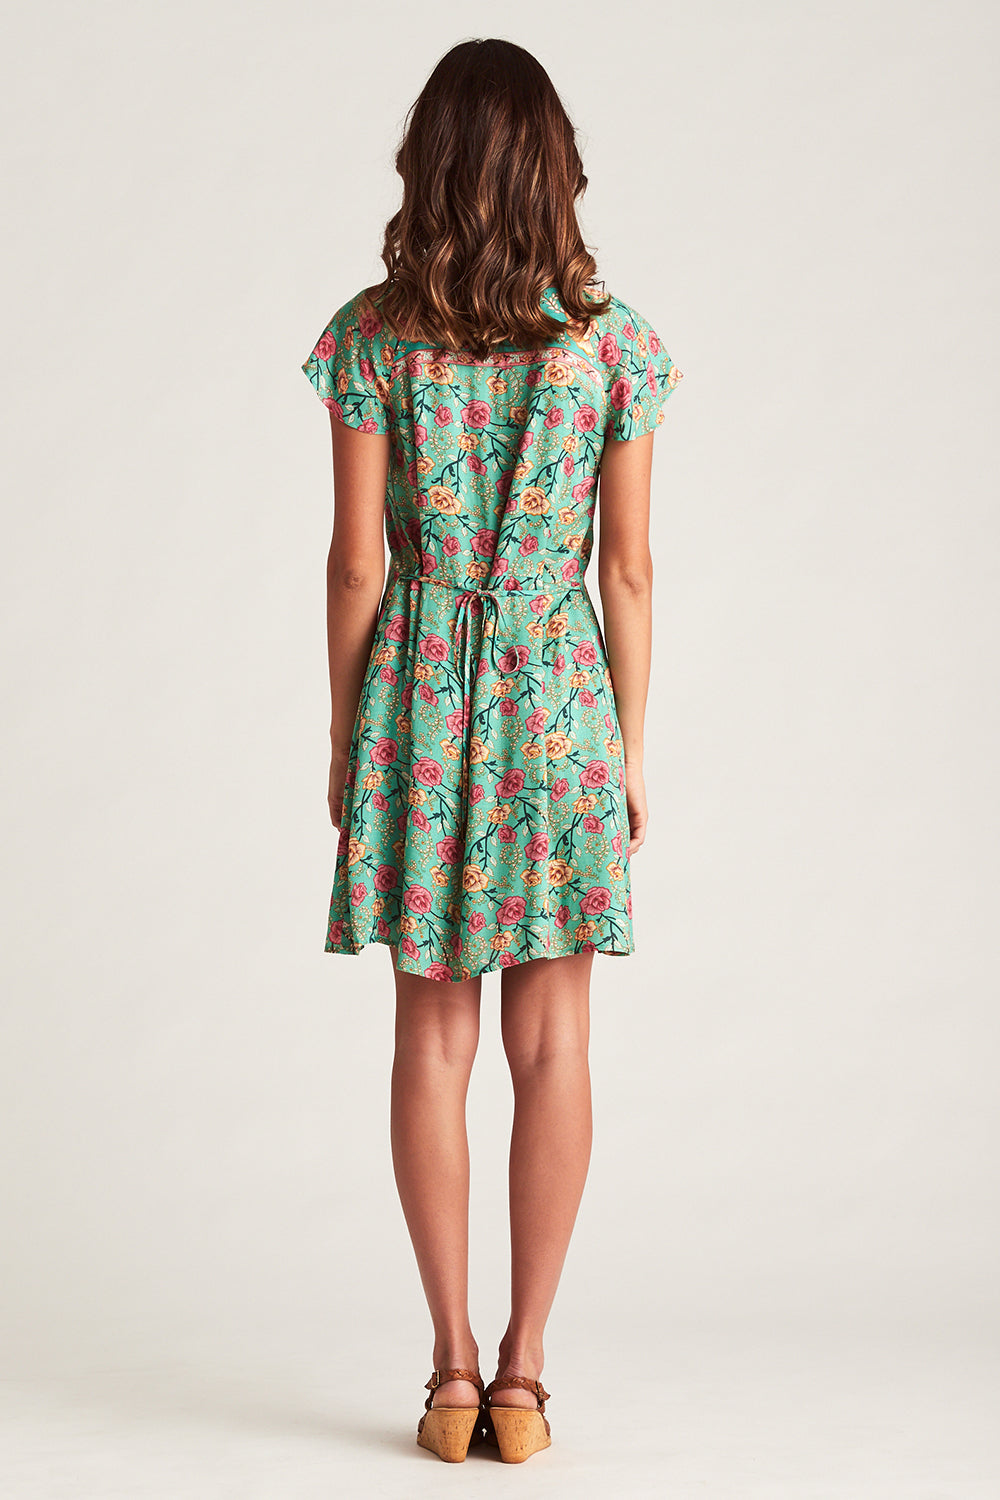 Muse Mini Dress in Verde